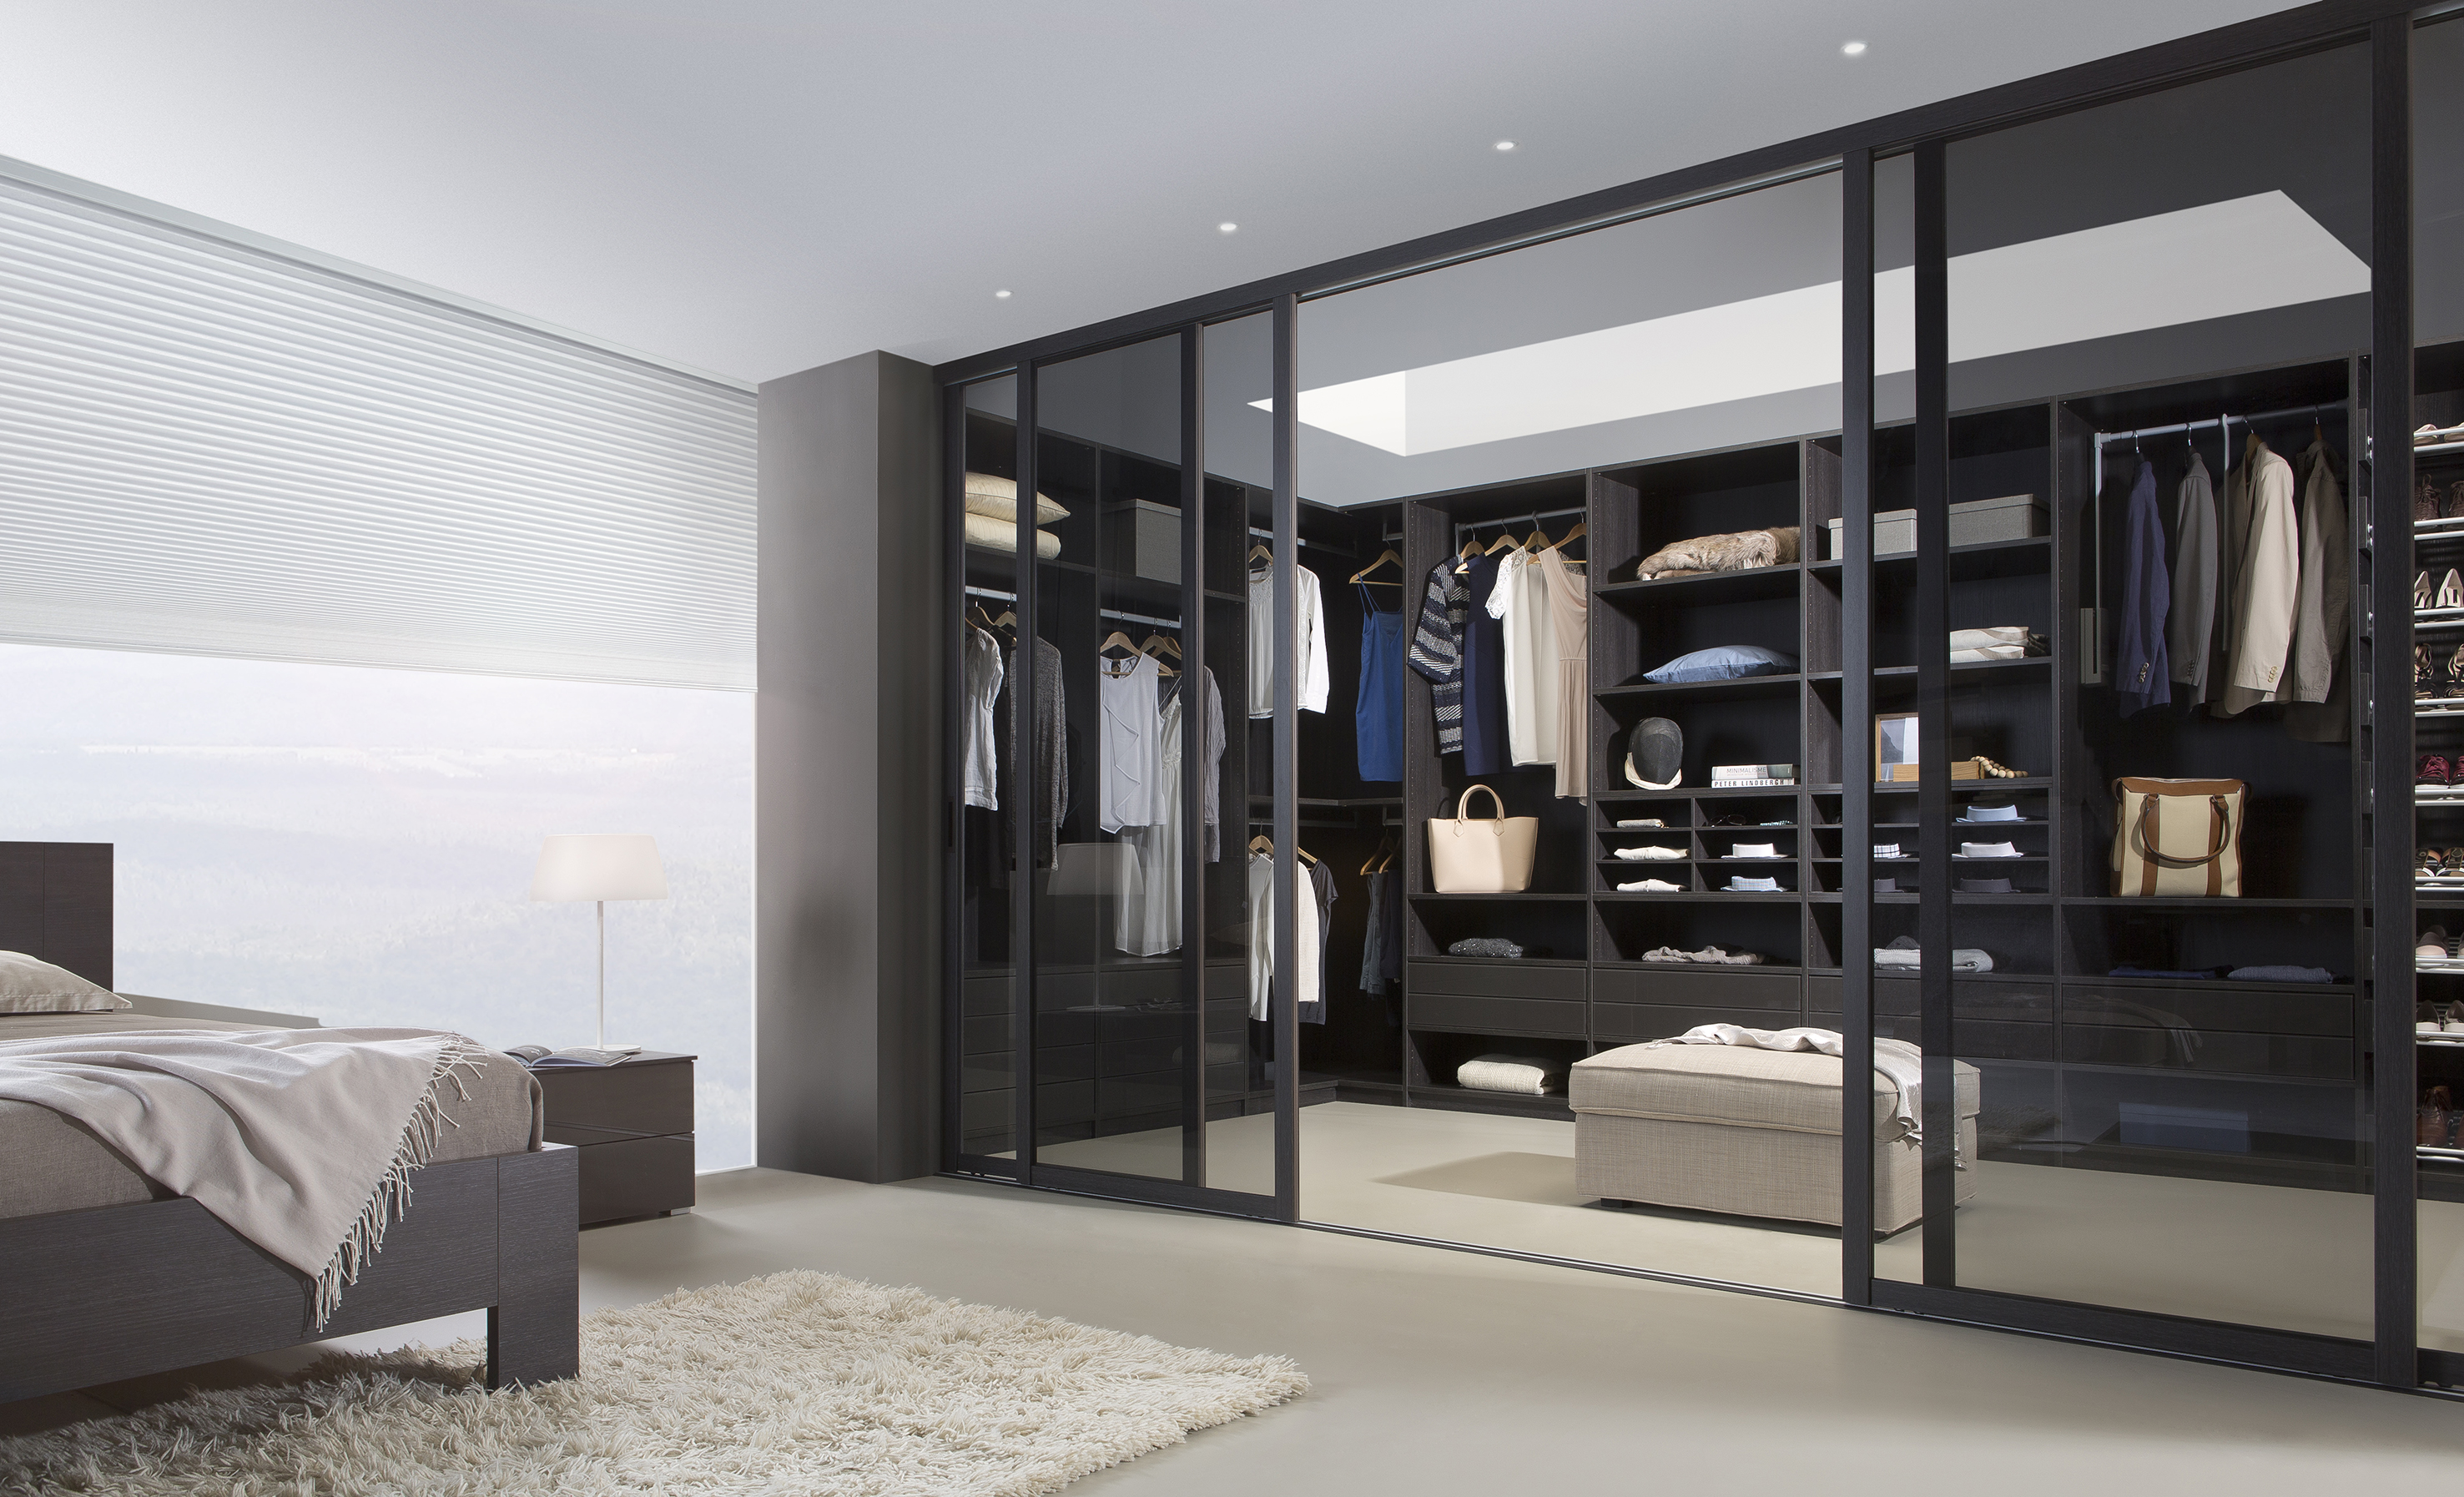 begehbare kleiderschr nke kleiderschrank begehbar schr nke und m bel auf ma leipzig weltweit. Black Bedroom Furniture Sets. Home Design Ideas